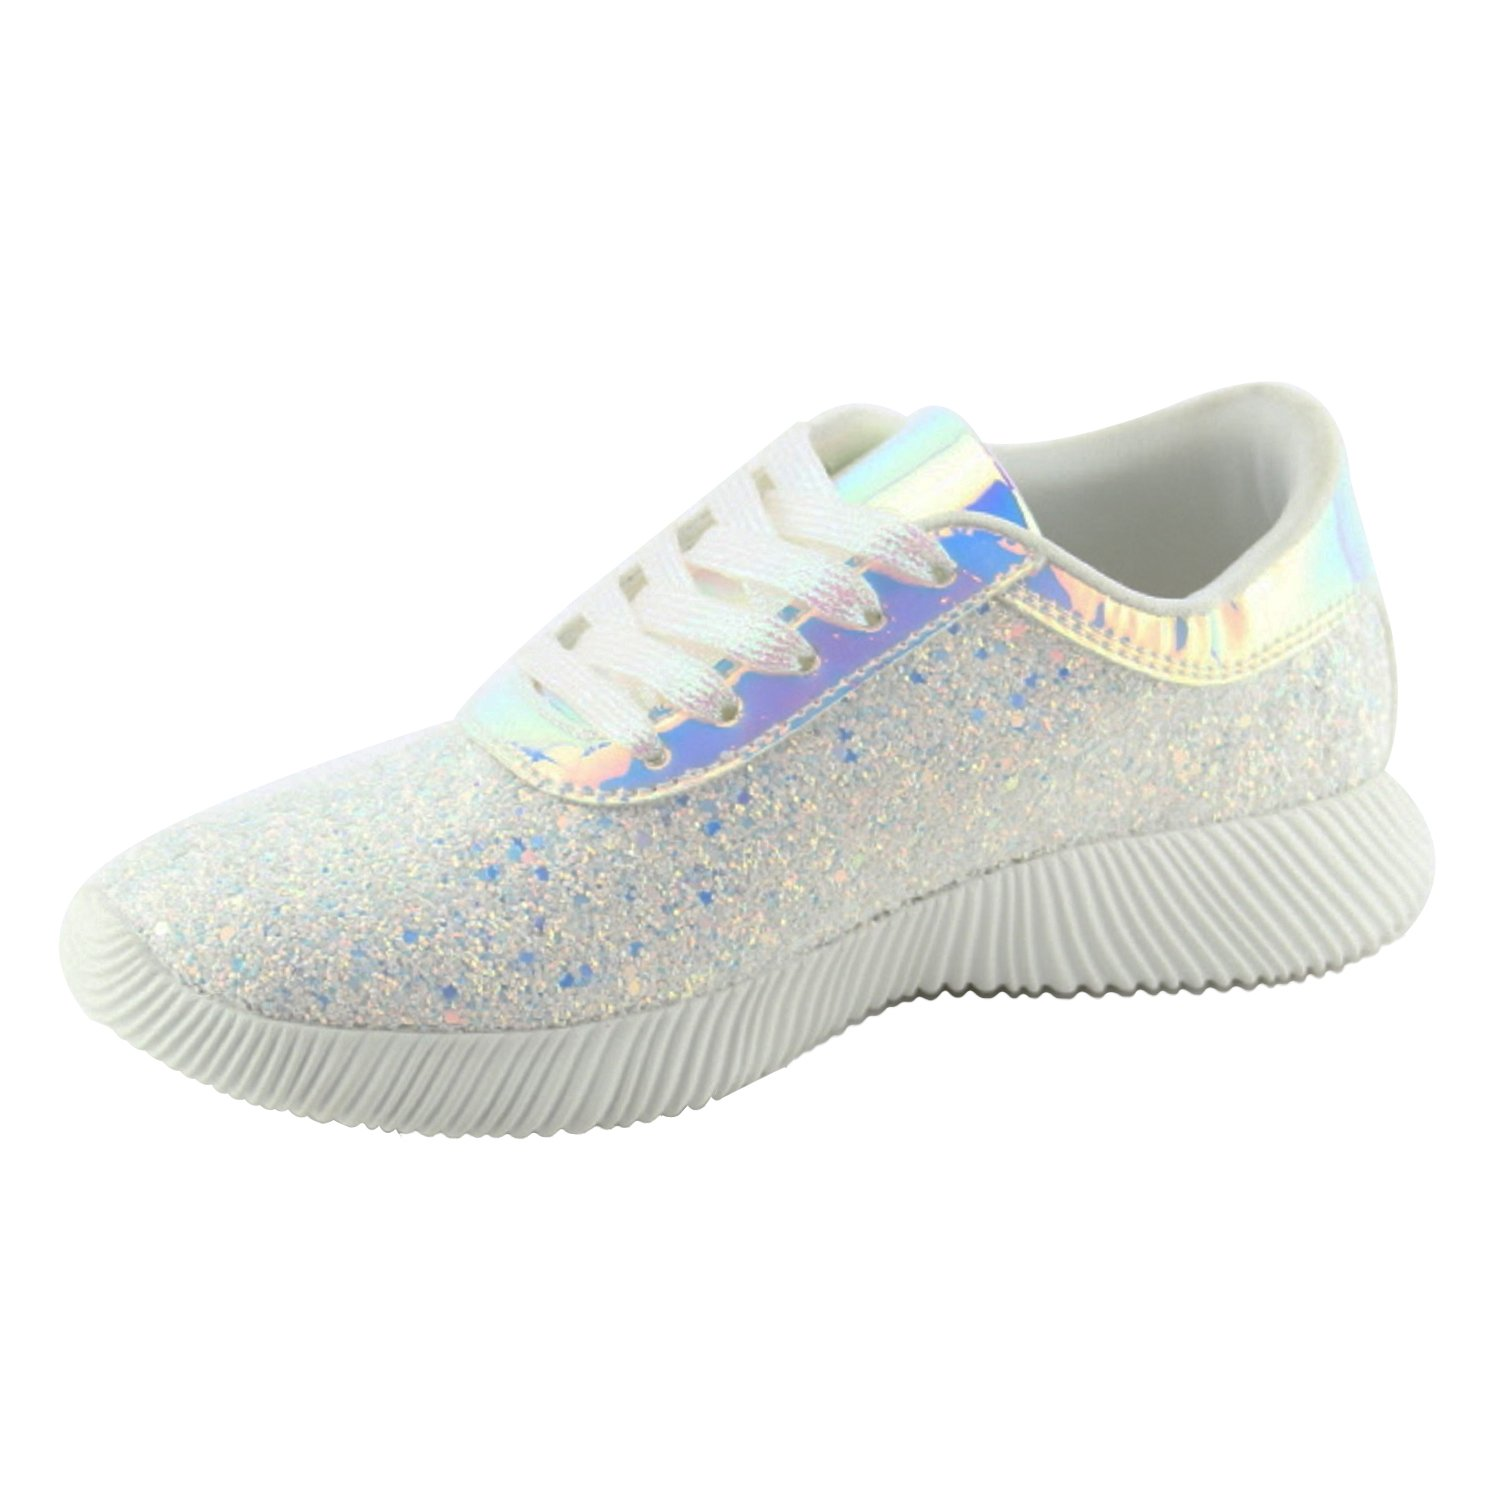 Womens Wedge Platform Fashion Sneaker Glitter Metallic Lace up Sparkle Slip On Street Casual Running Shoes White 10